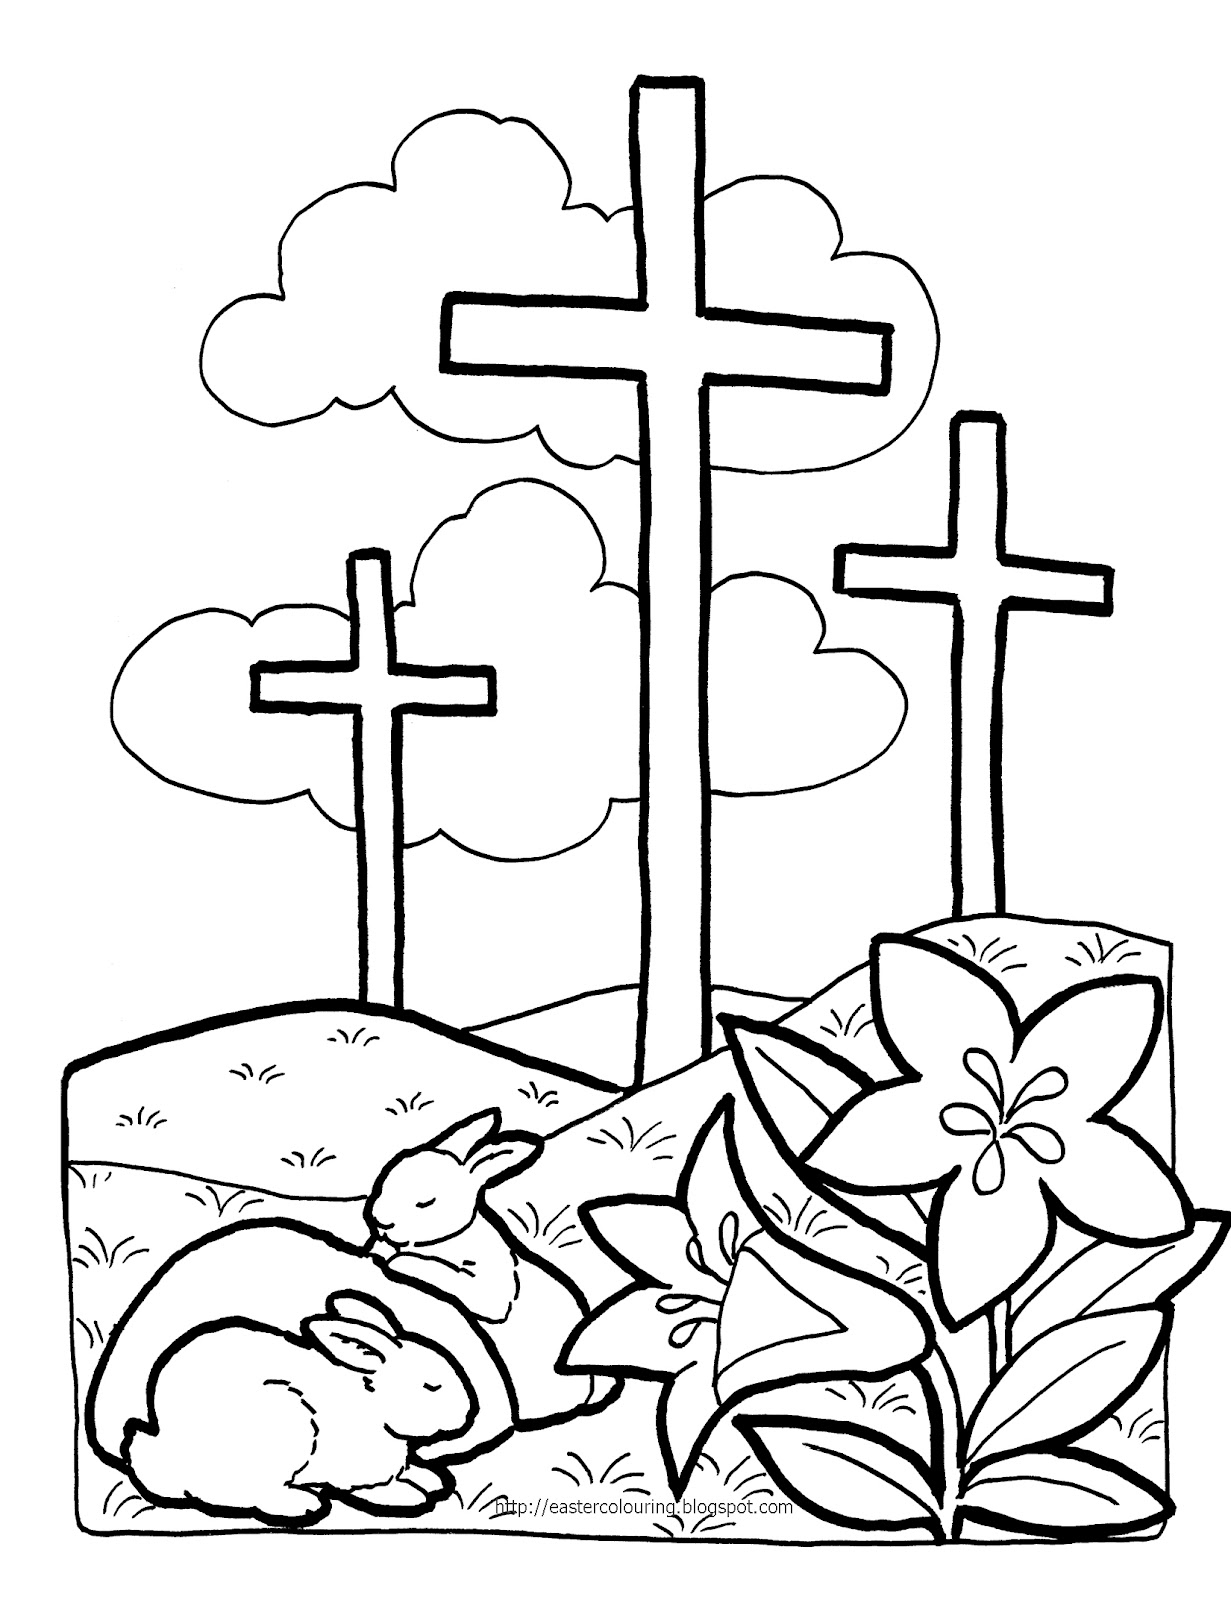 hight resolution of easter printable clipart for kids religious easter images free